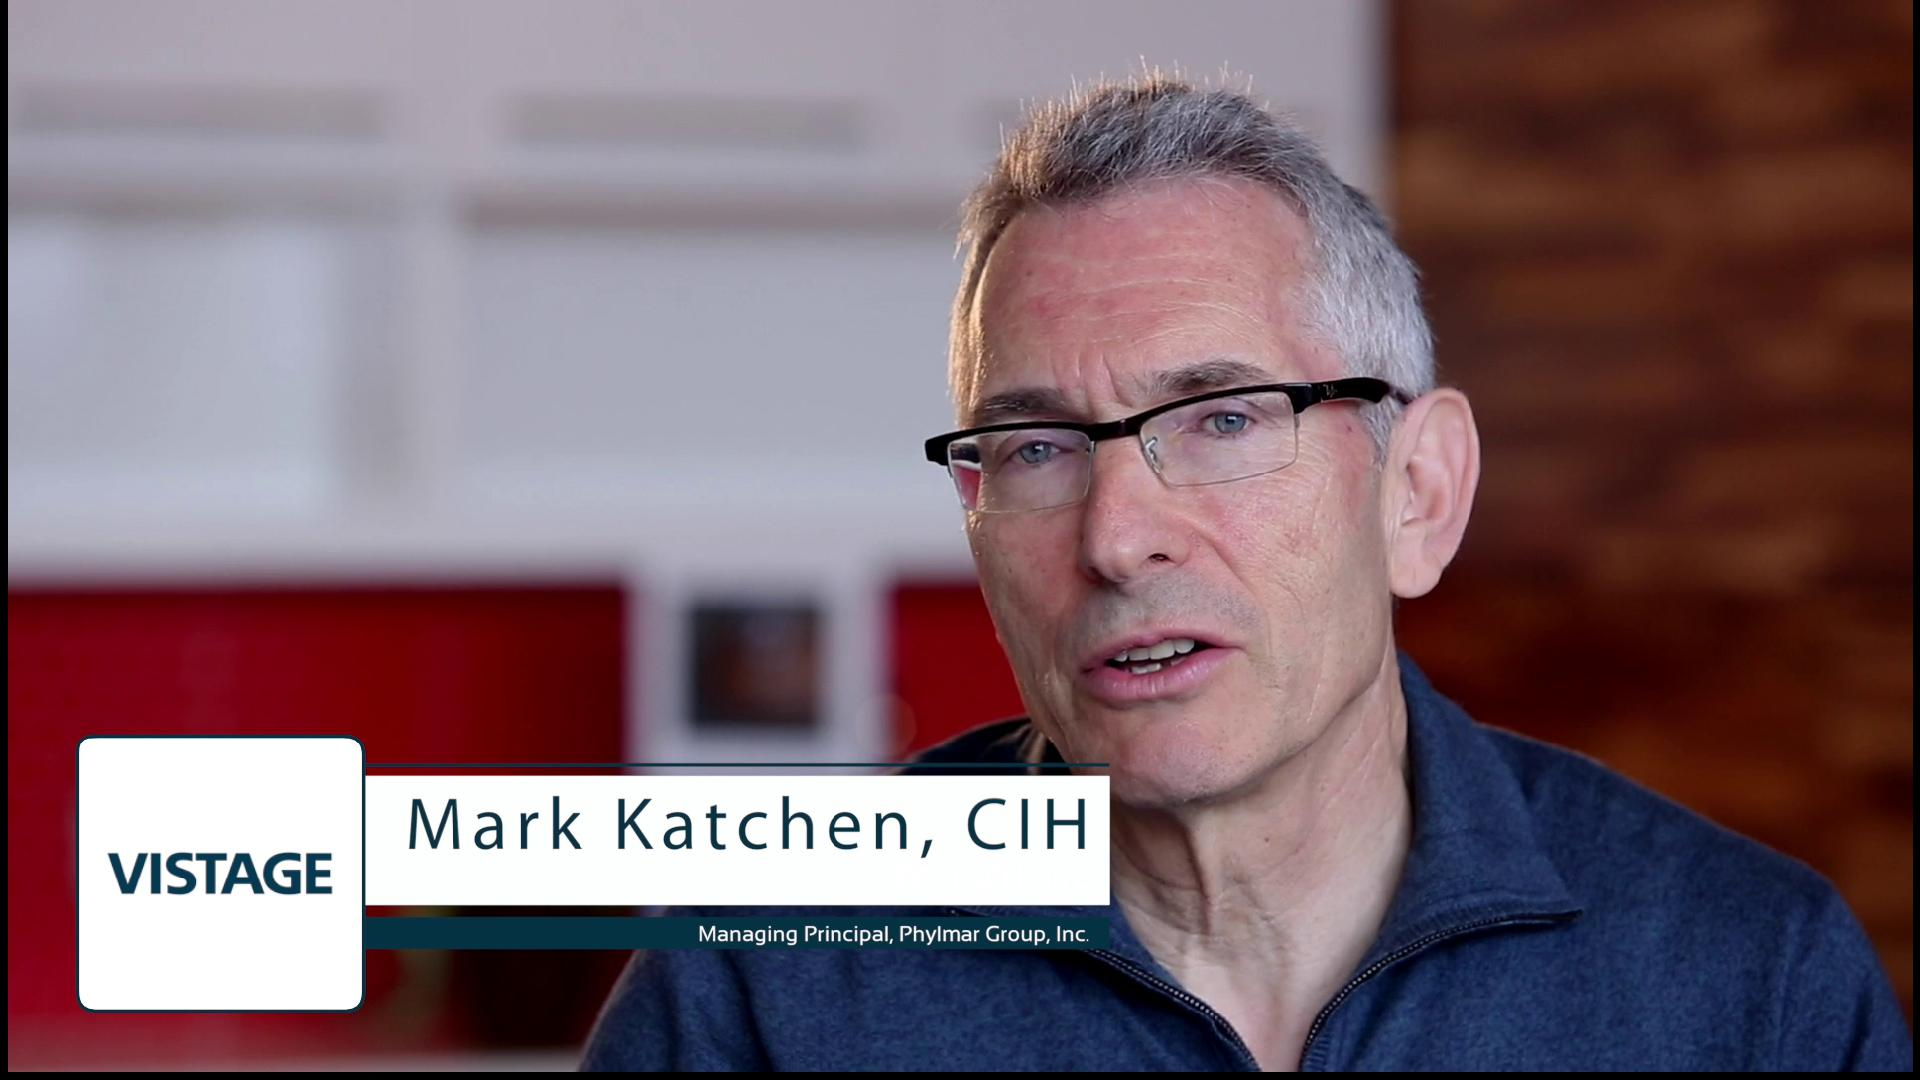 Mark Katchen